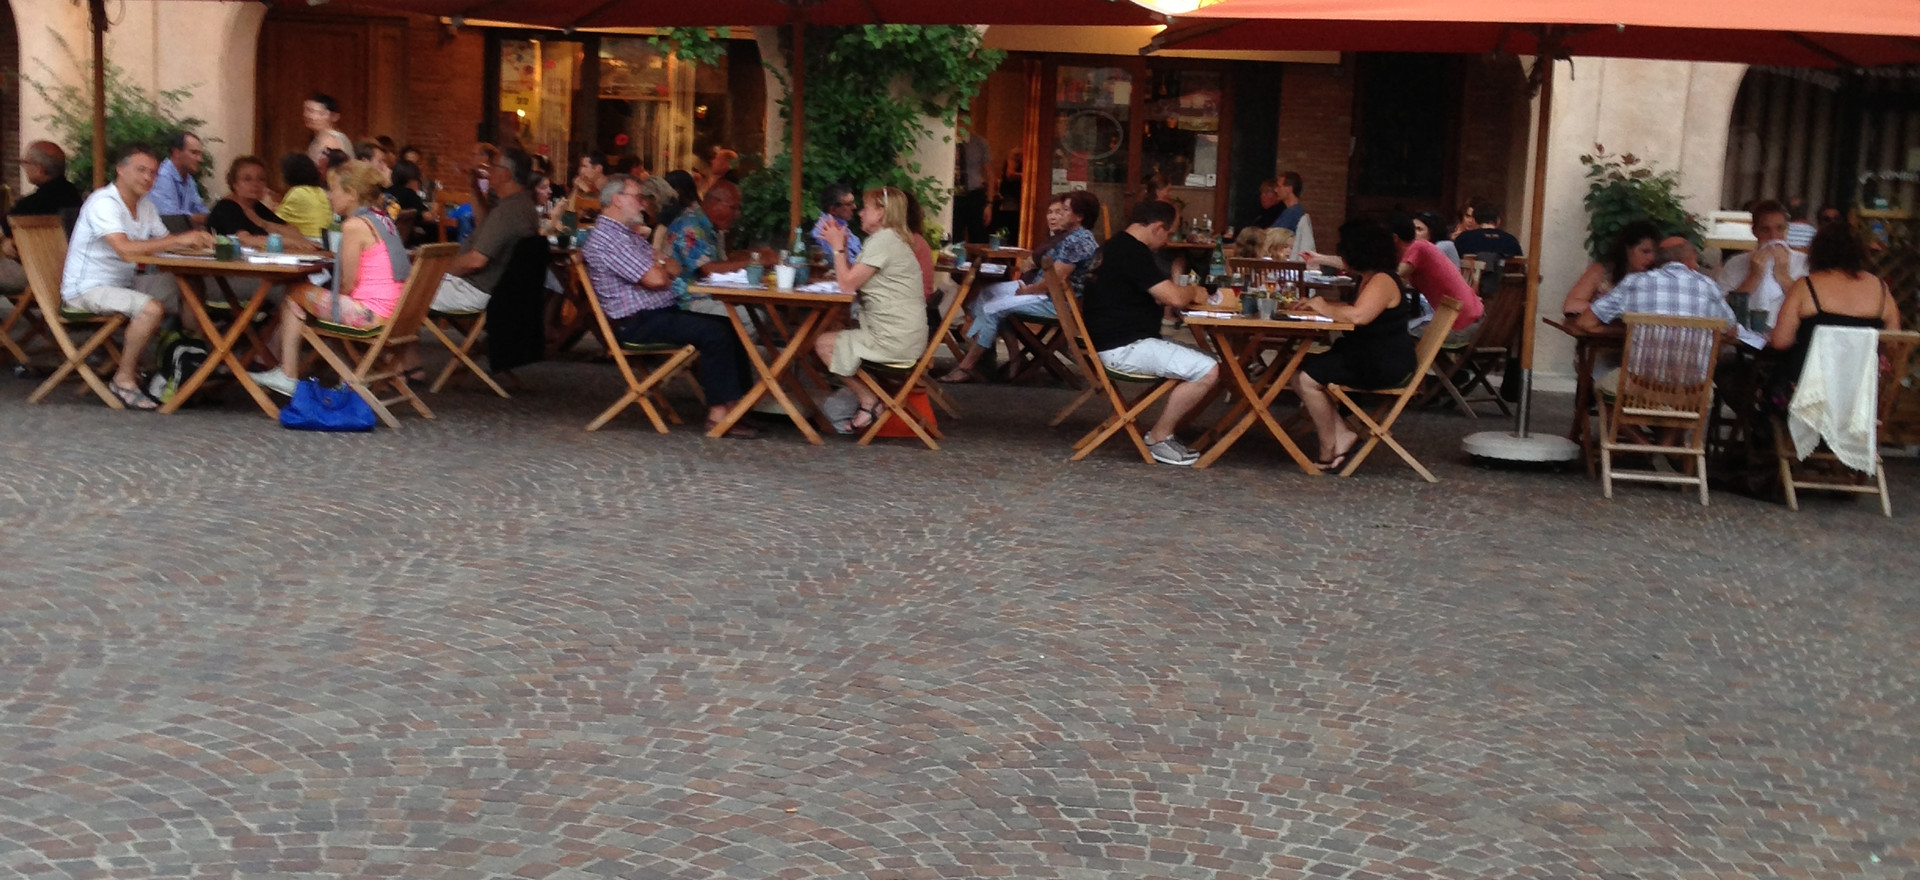 Les Sommeliers at Gaillac